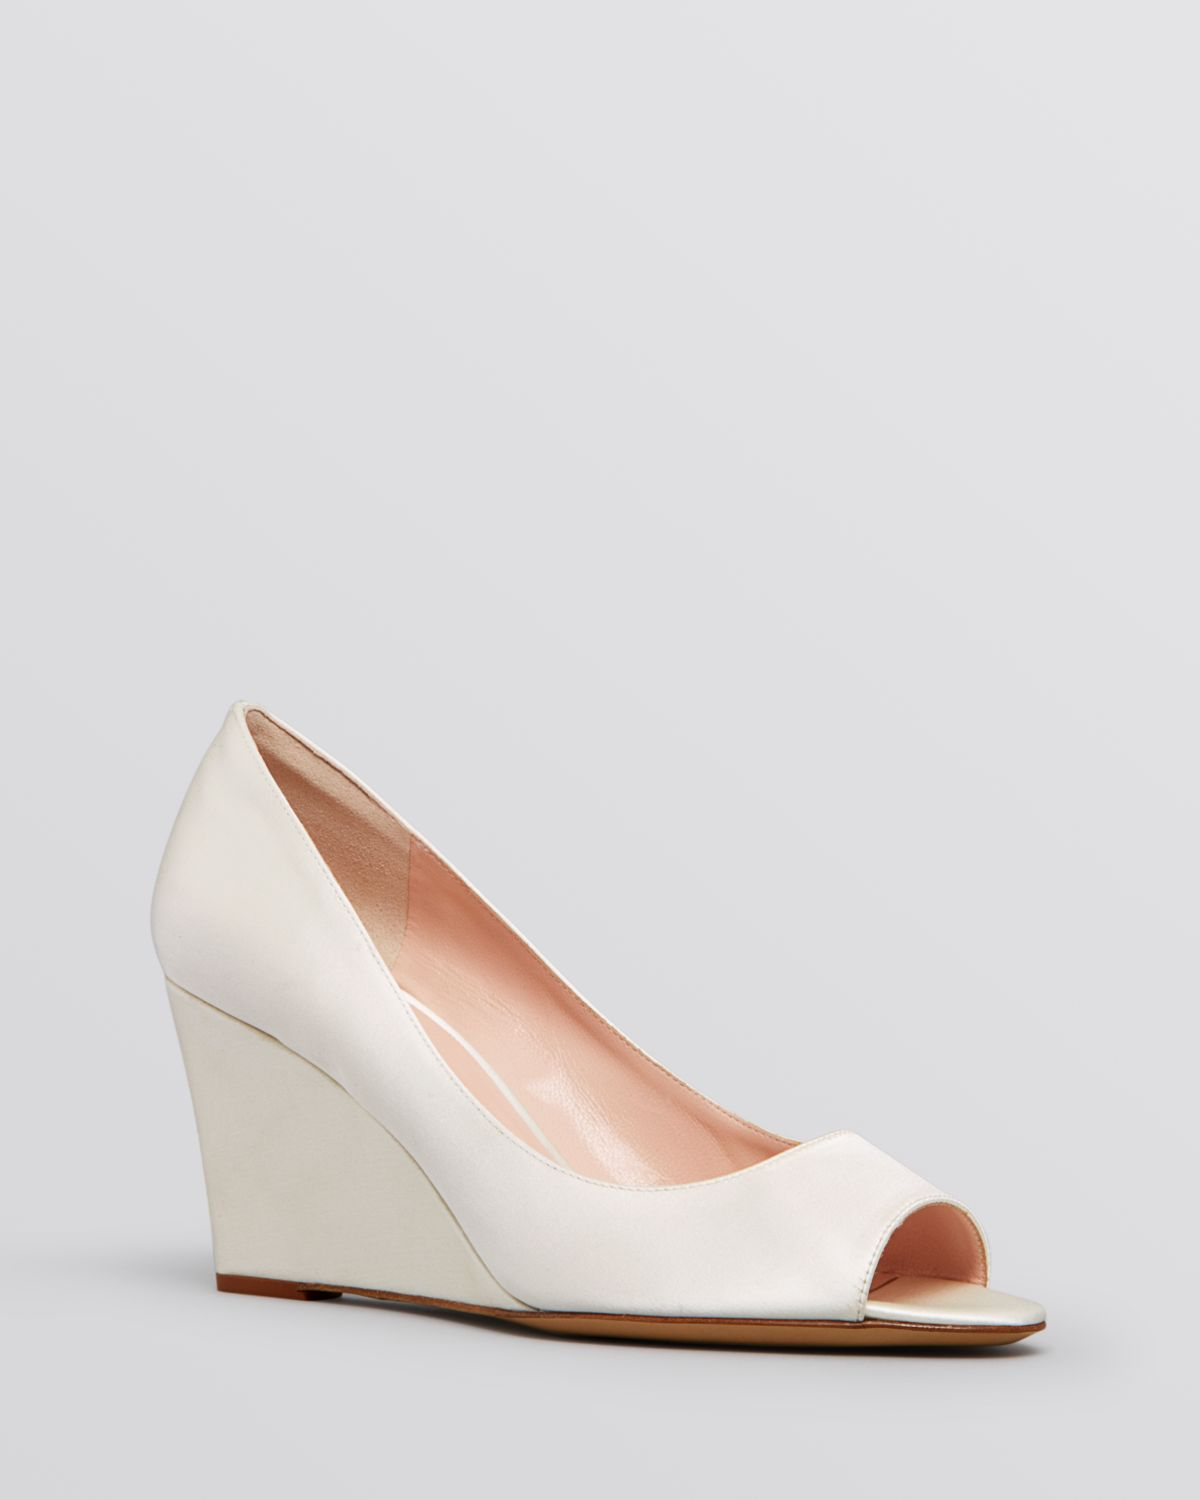 Kate Spade New York Patent Leather Peep-Toe Wedges latest collections cheap online discount cheap ost release dates NPCF0c6P